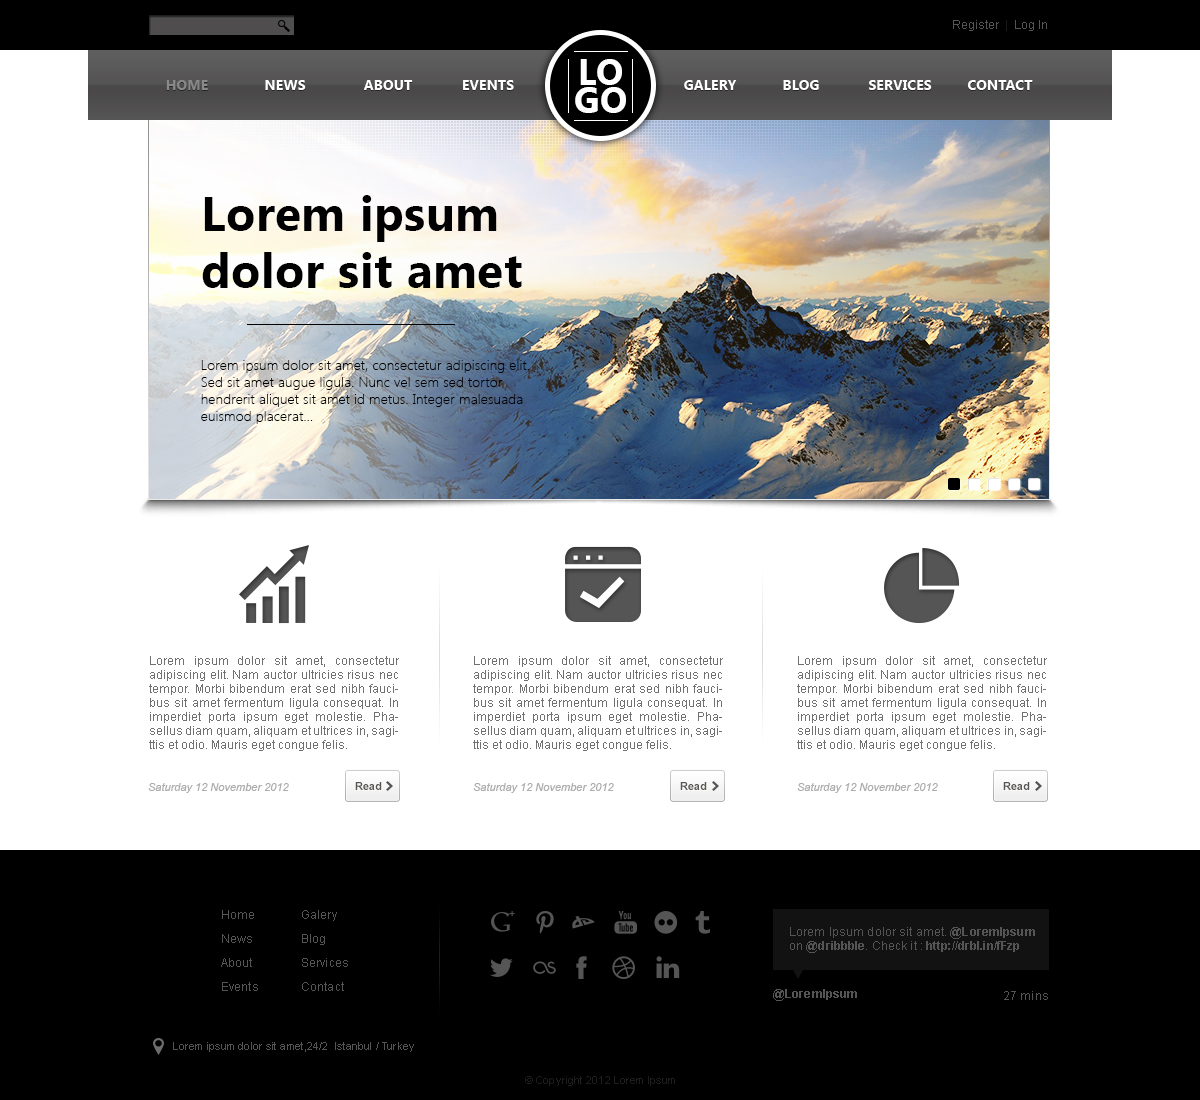 30 Free PSD Web Design Templates Inspirationfeed 9IqRTQb9